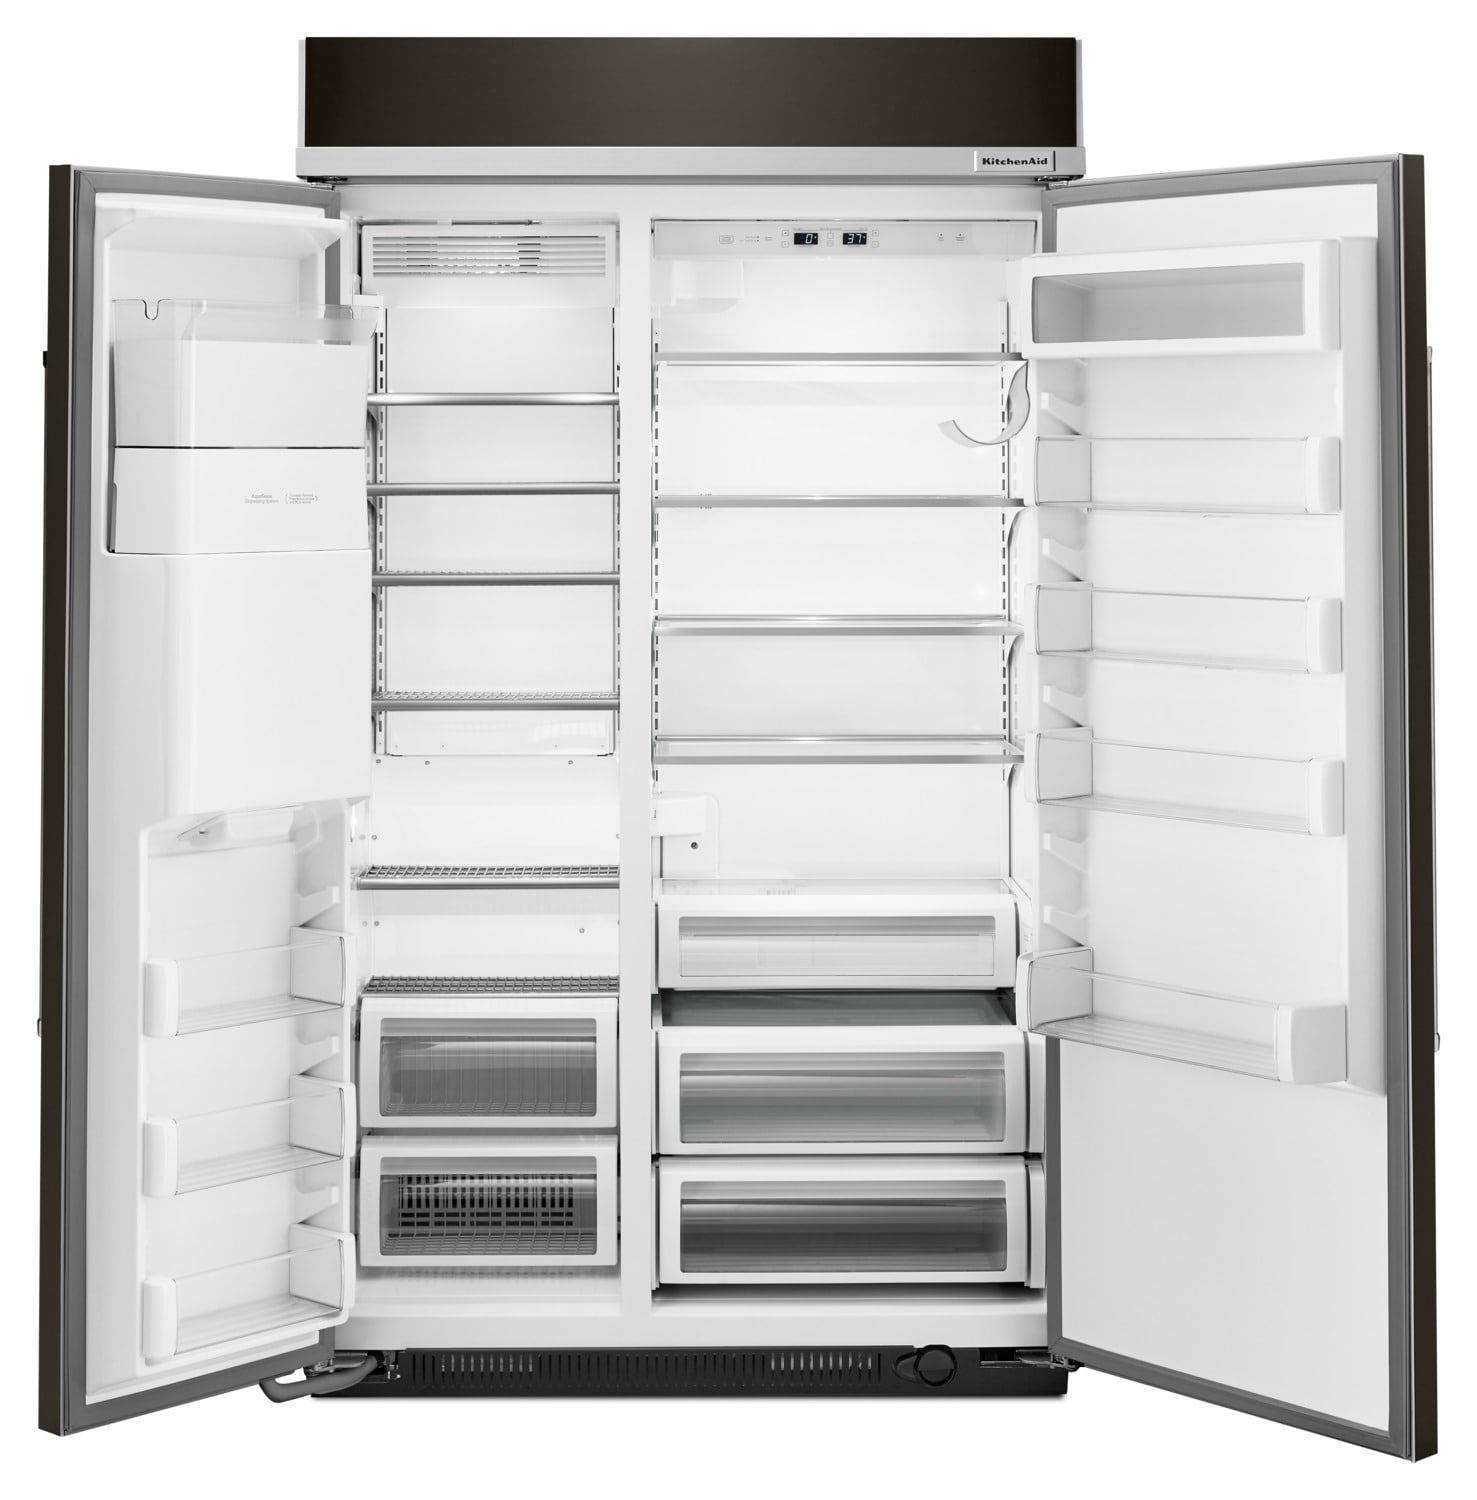 kitchenaid 29.5 cu. ft. built-in side-by-side refrigerator